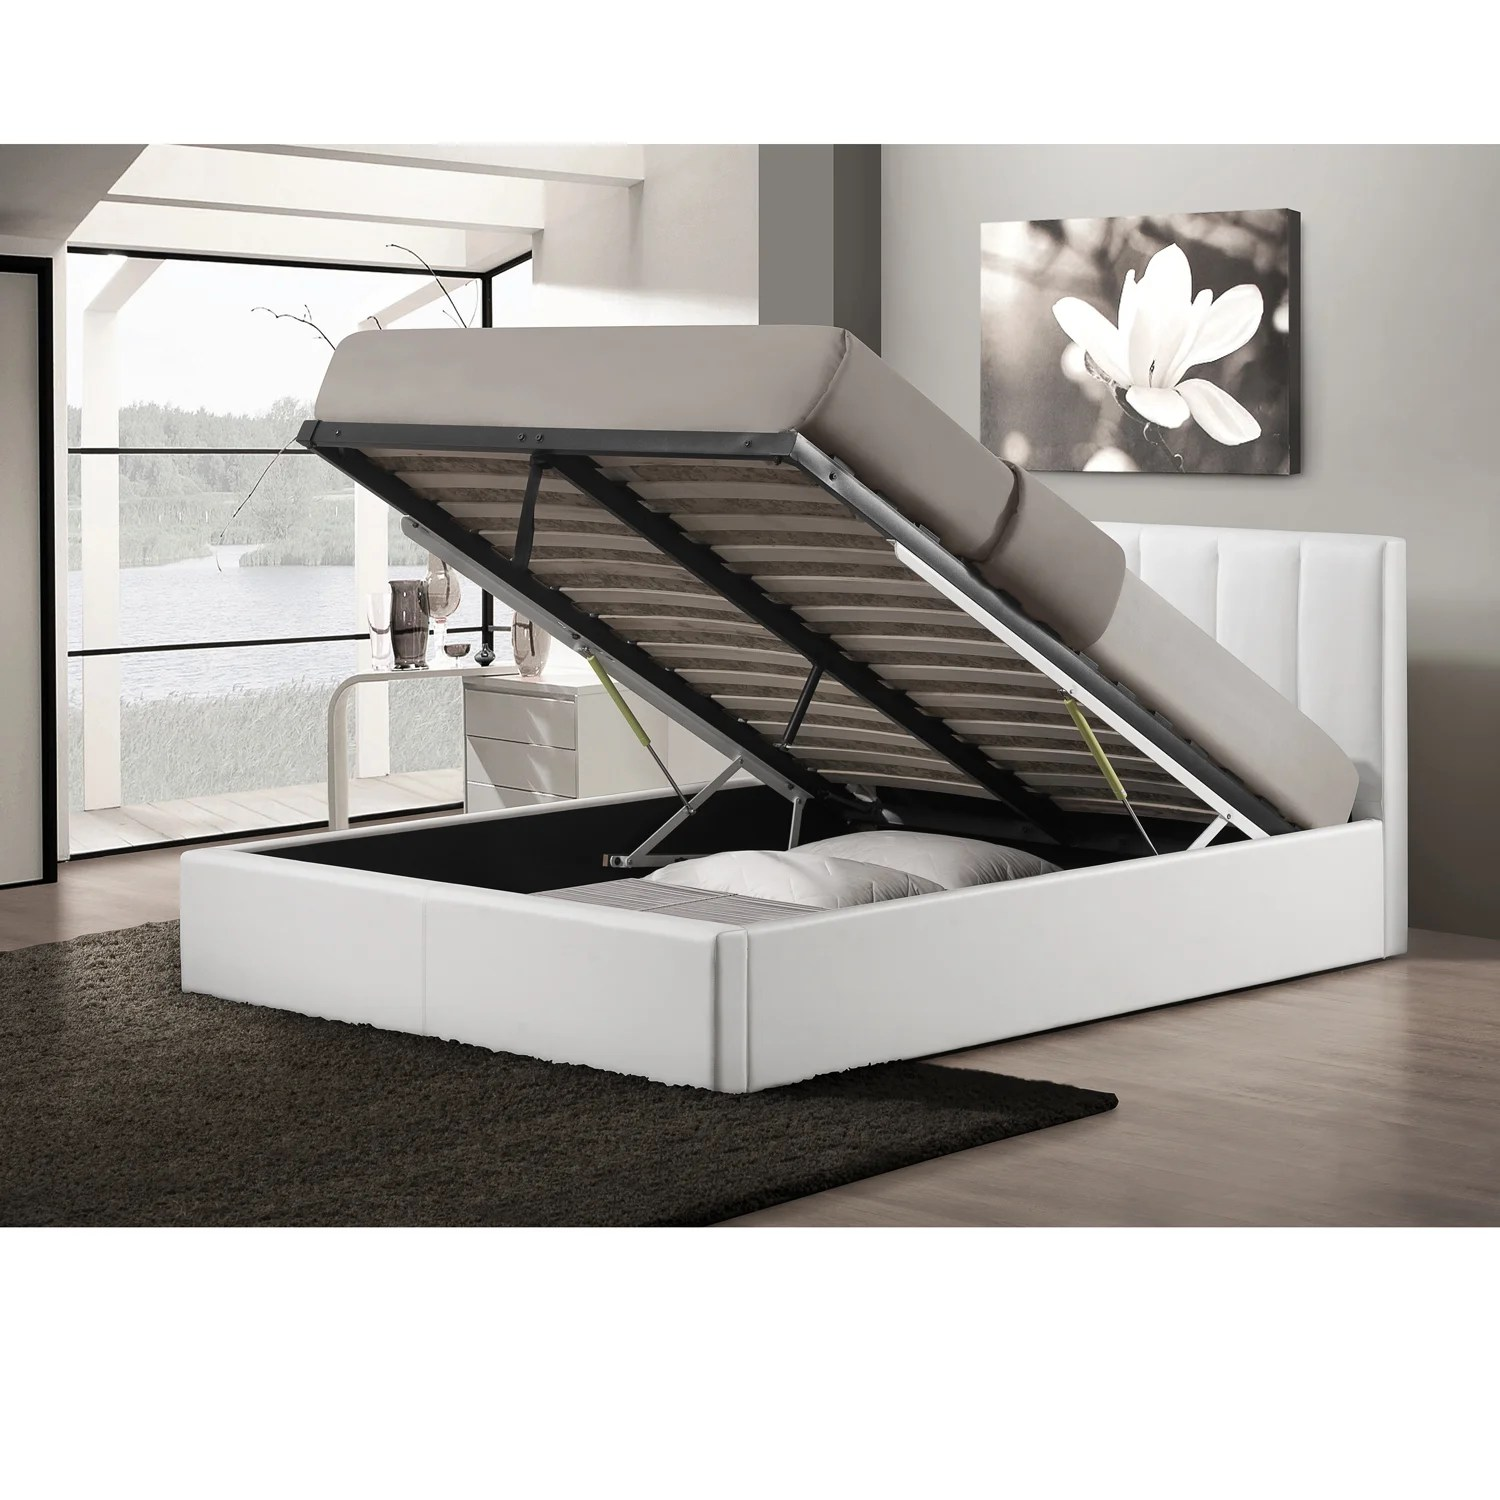 Gas Lift Storage Bed Ikea Strick Bolton Chana Upholstered White Storage Bed